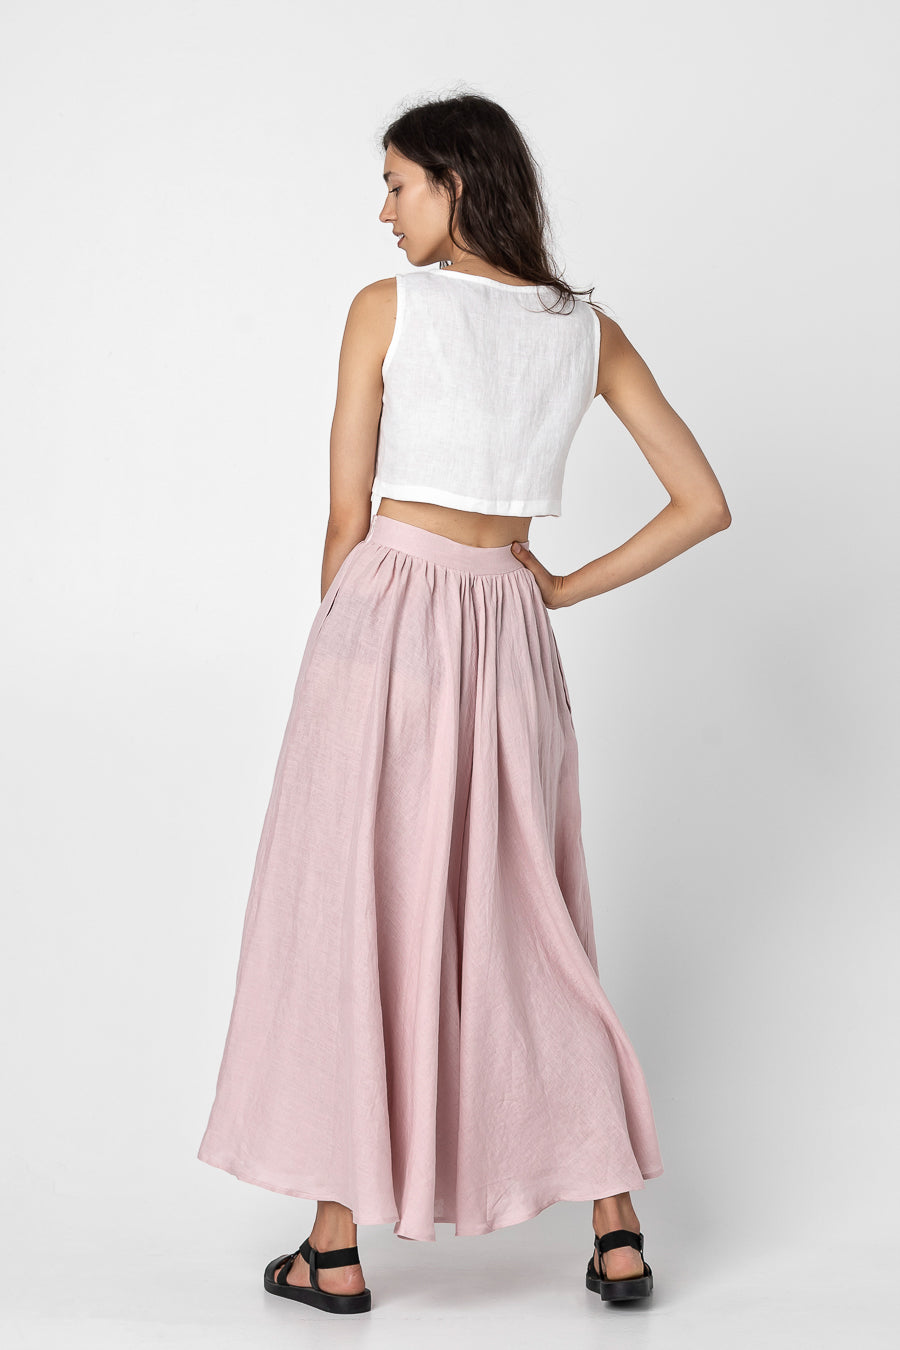 MONA | Linen skirt with pockets